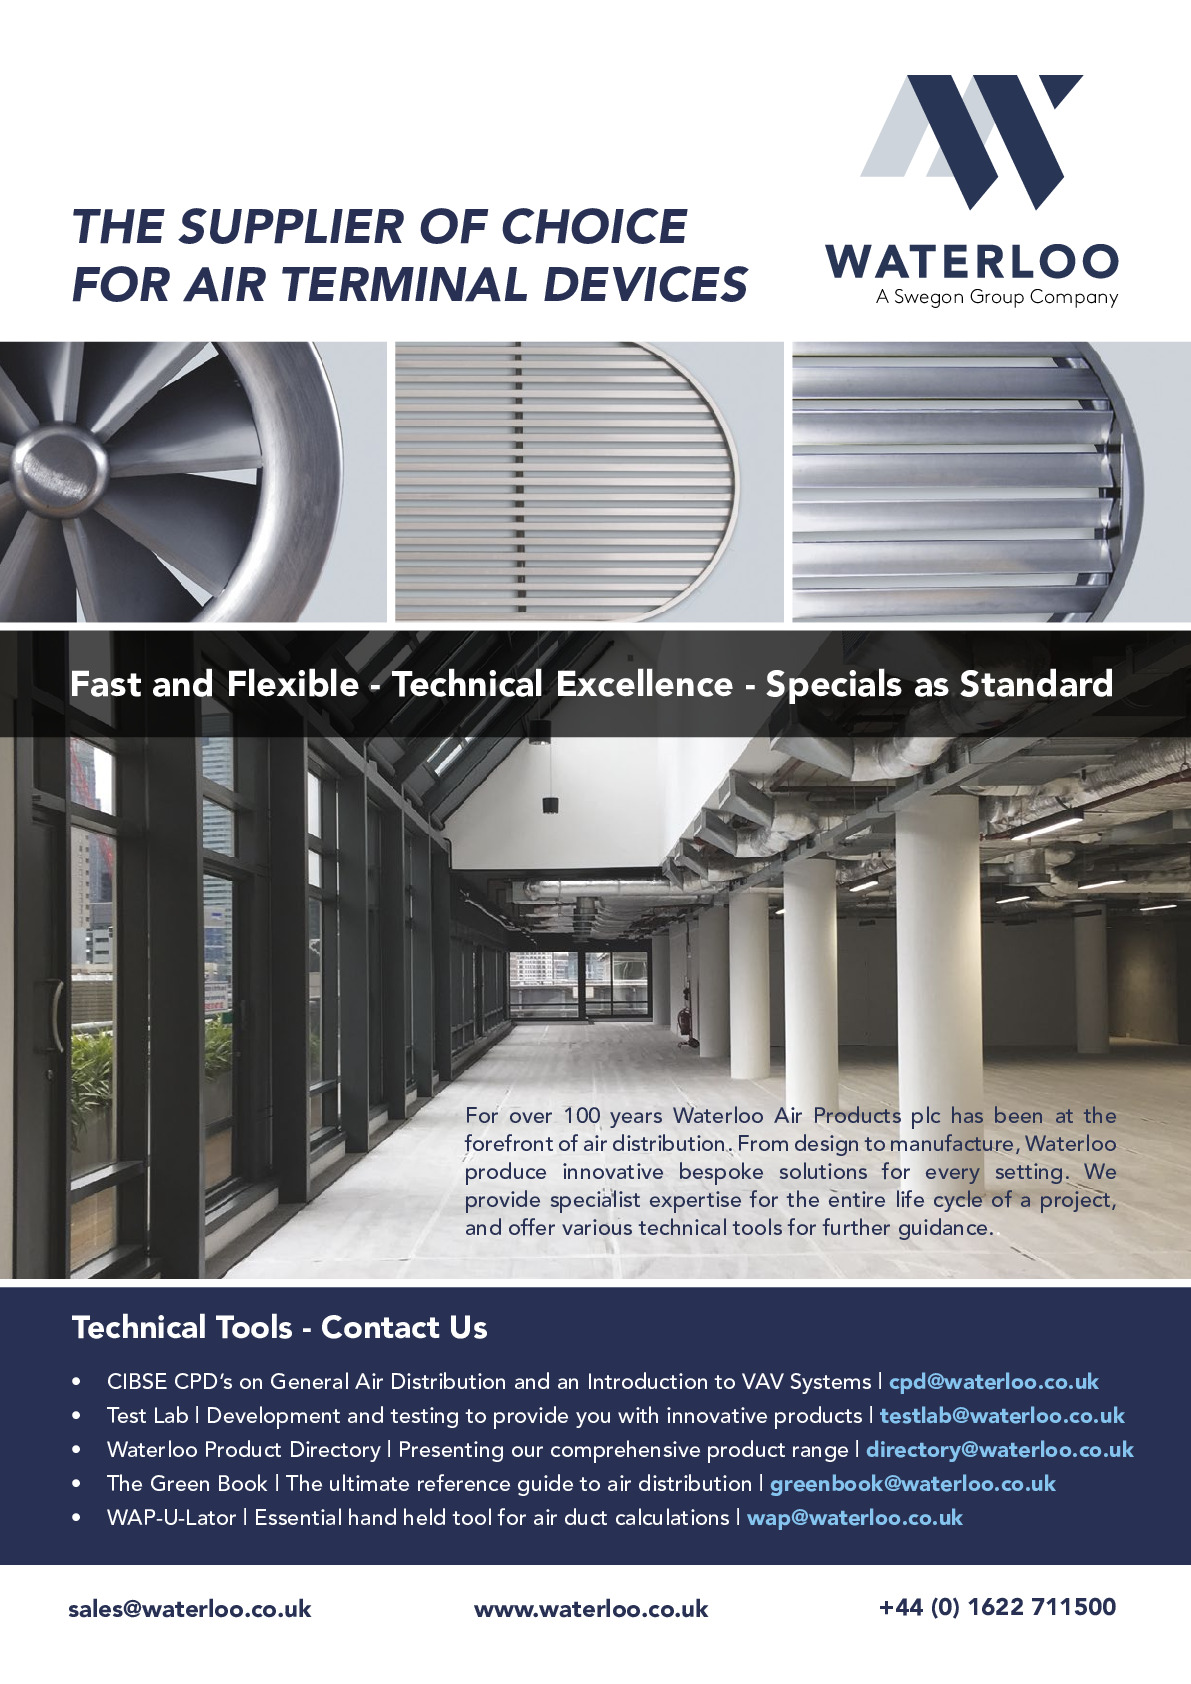 Waterloo Air Products Plc advertisement thumbnail